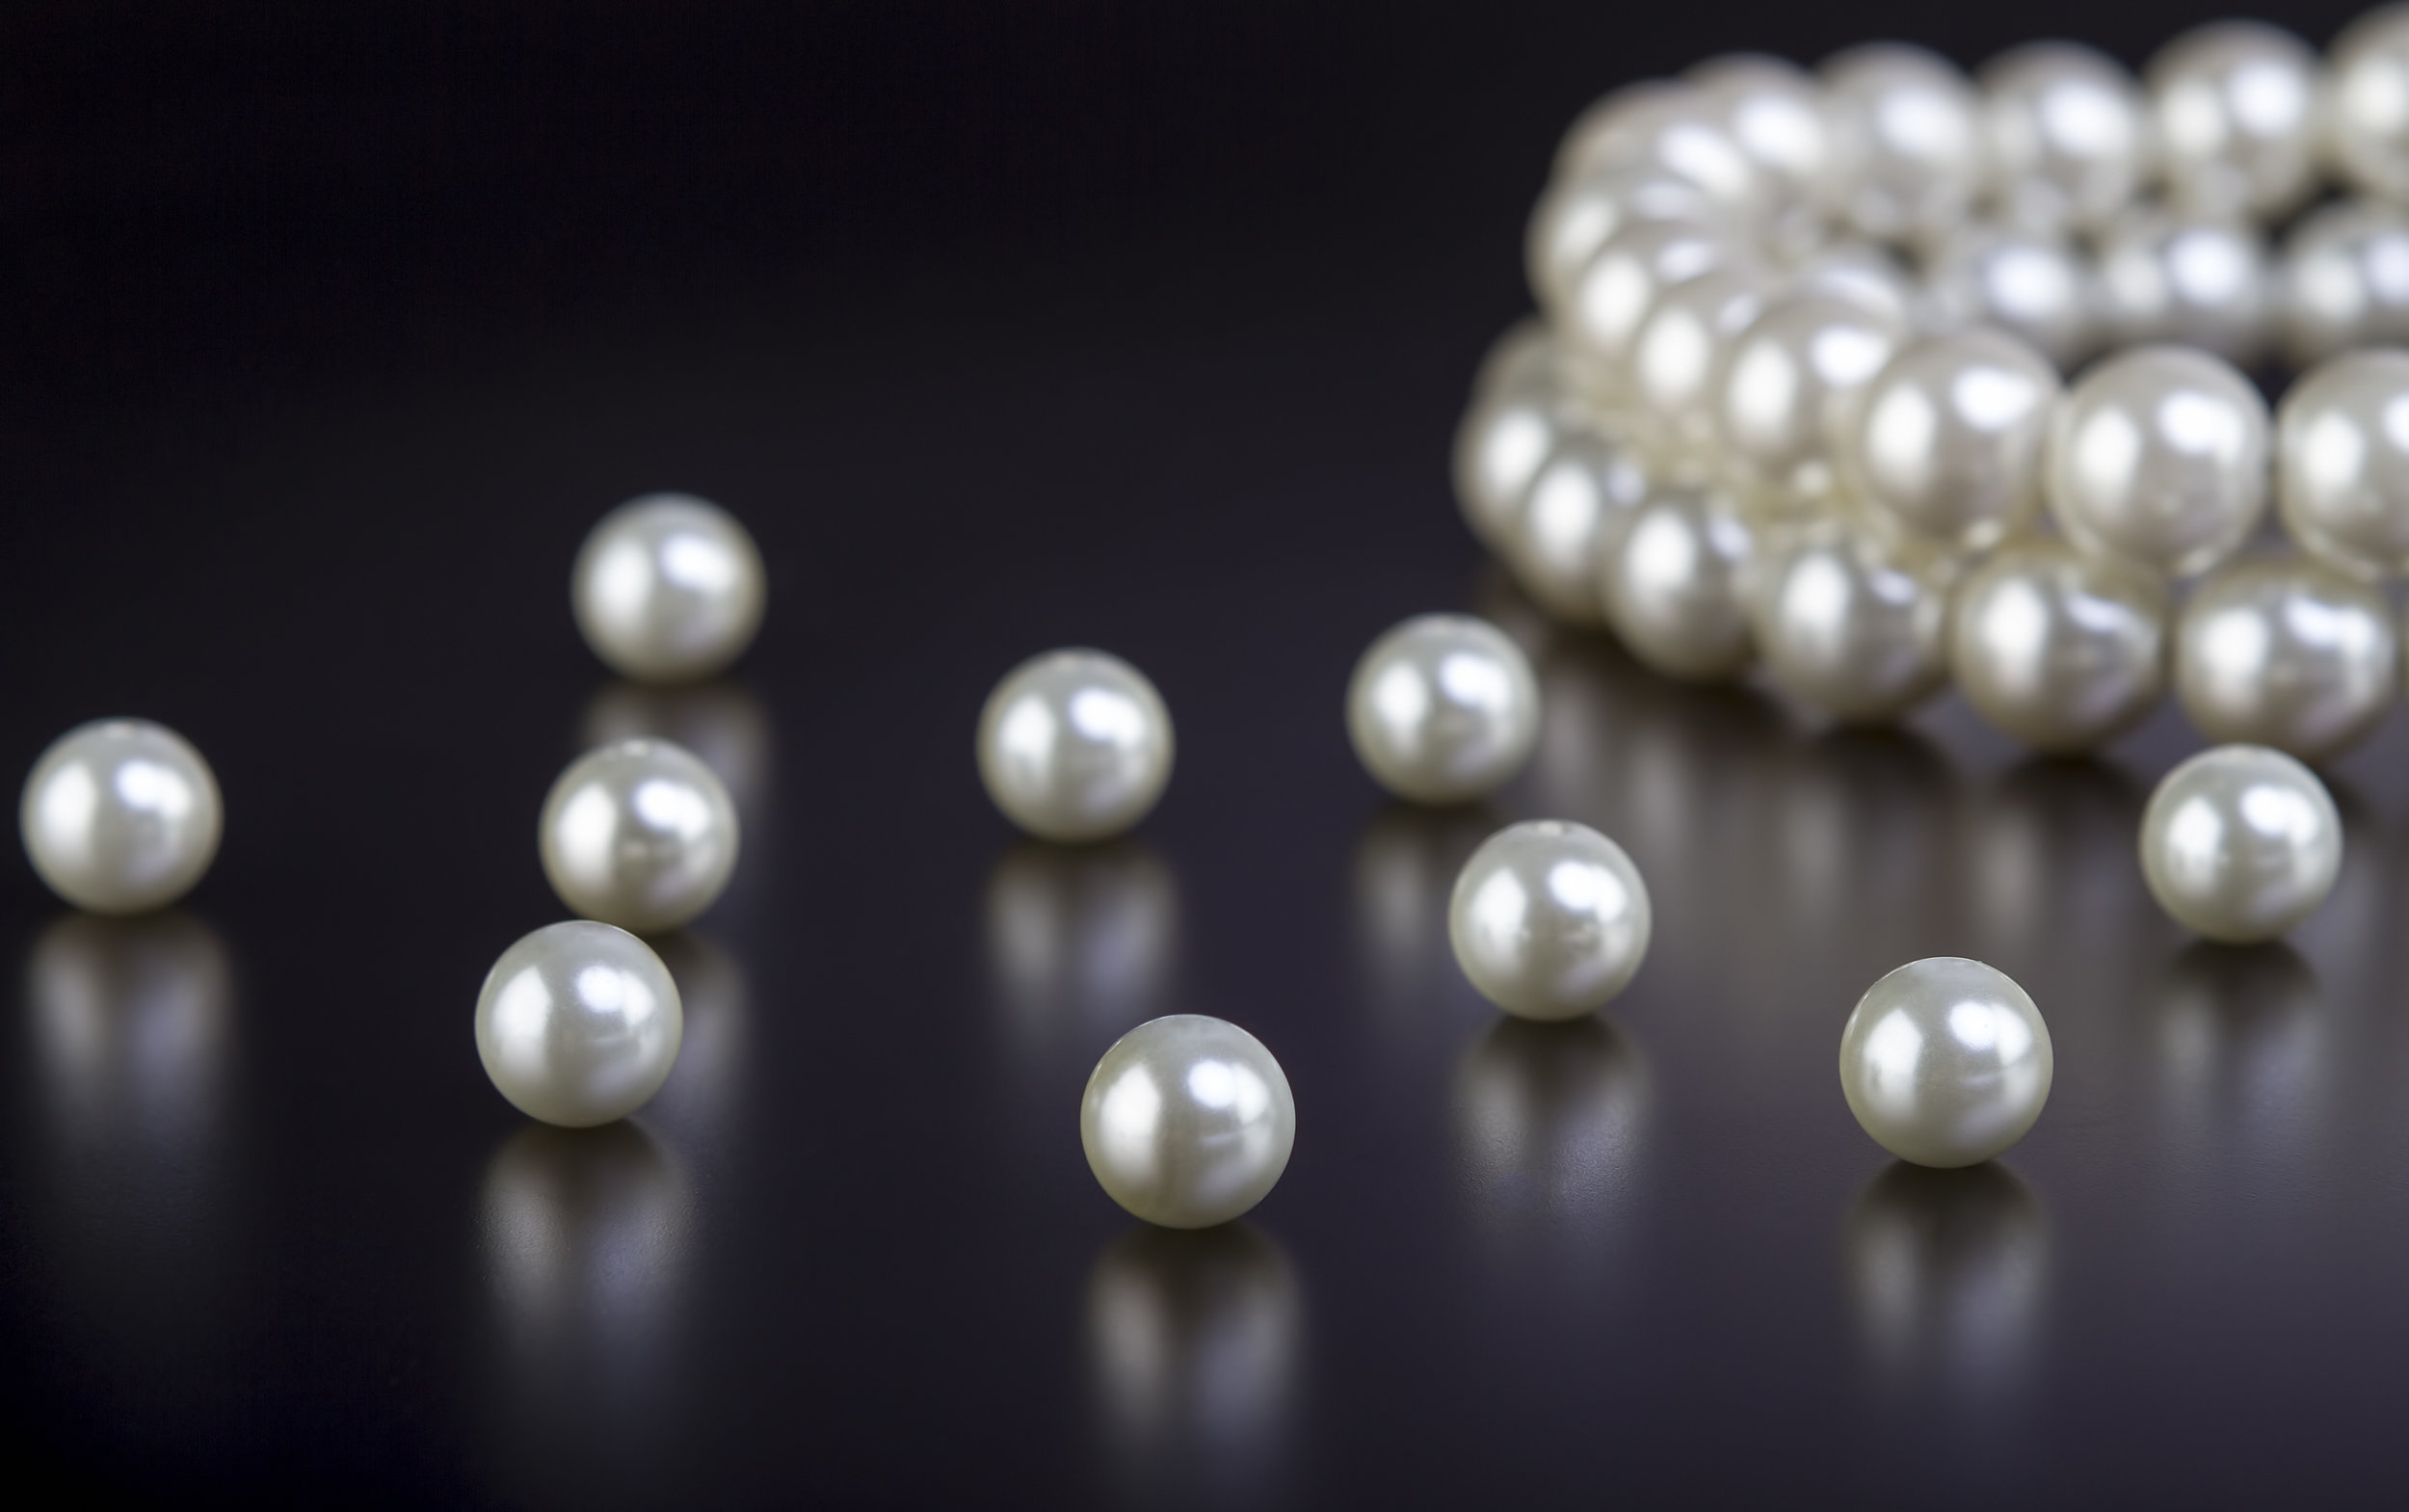 Restringing your pearls can be a delicate process, but will make your pearl necklaces look just like new.